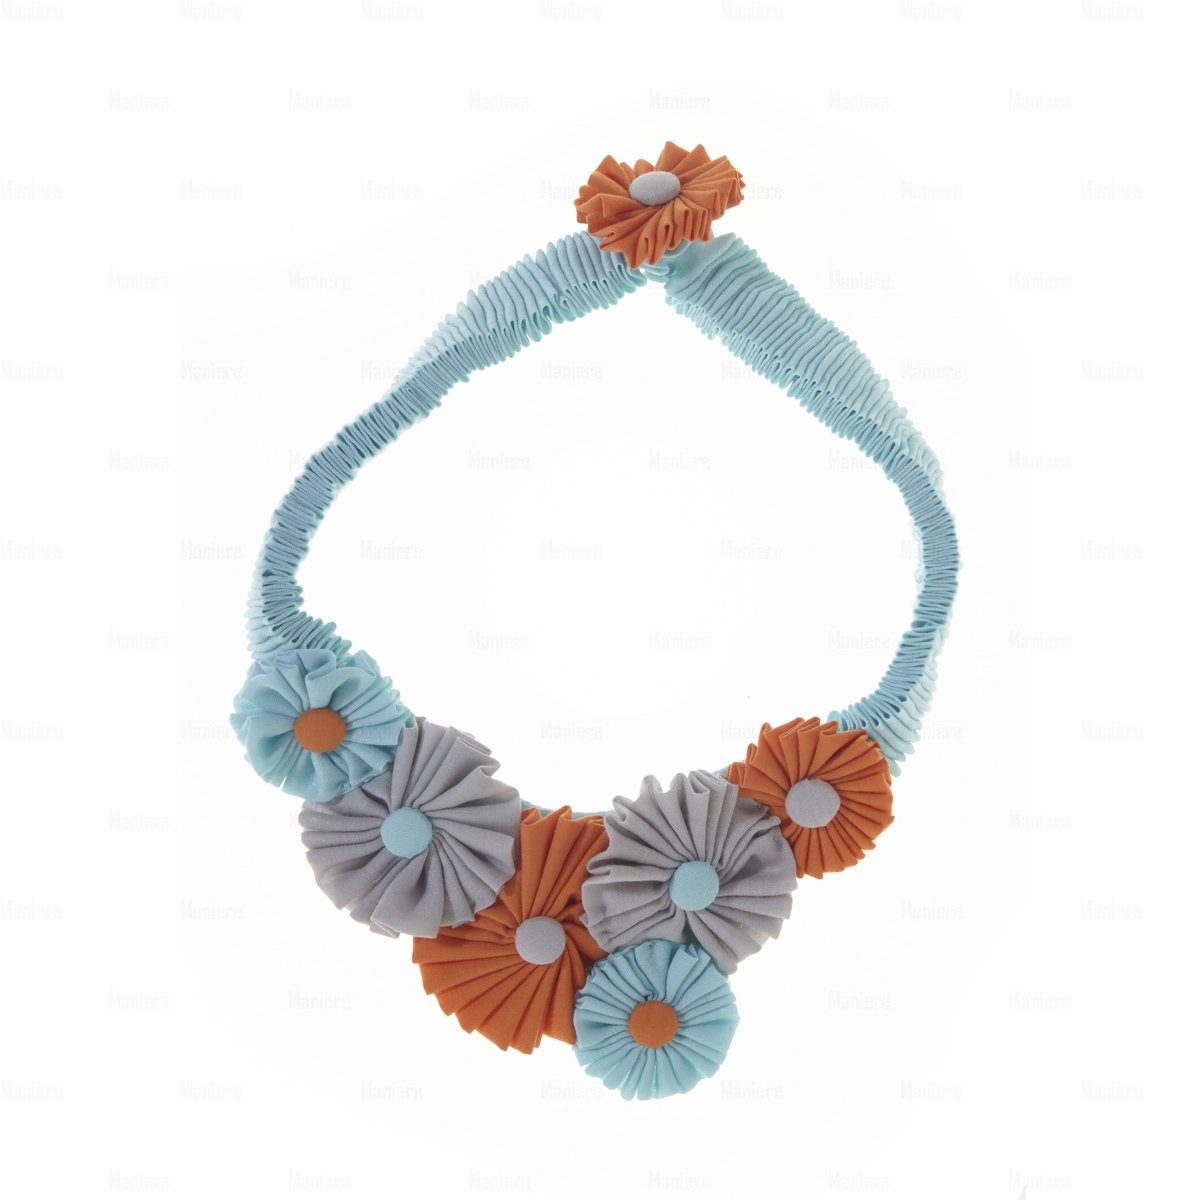 Accordion-Flower-Necklace Necklace Manière Turquise COMBO